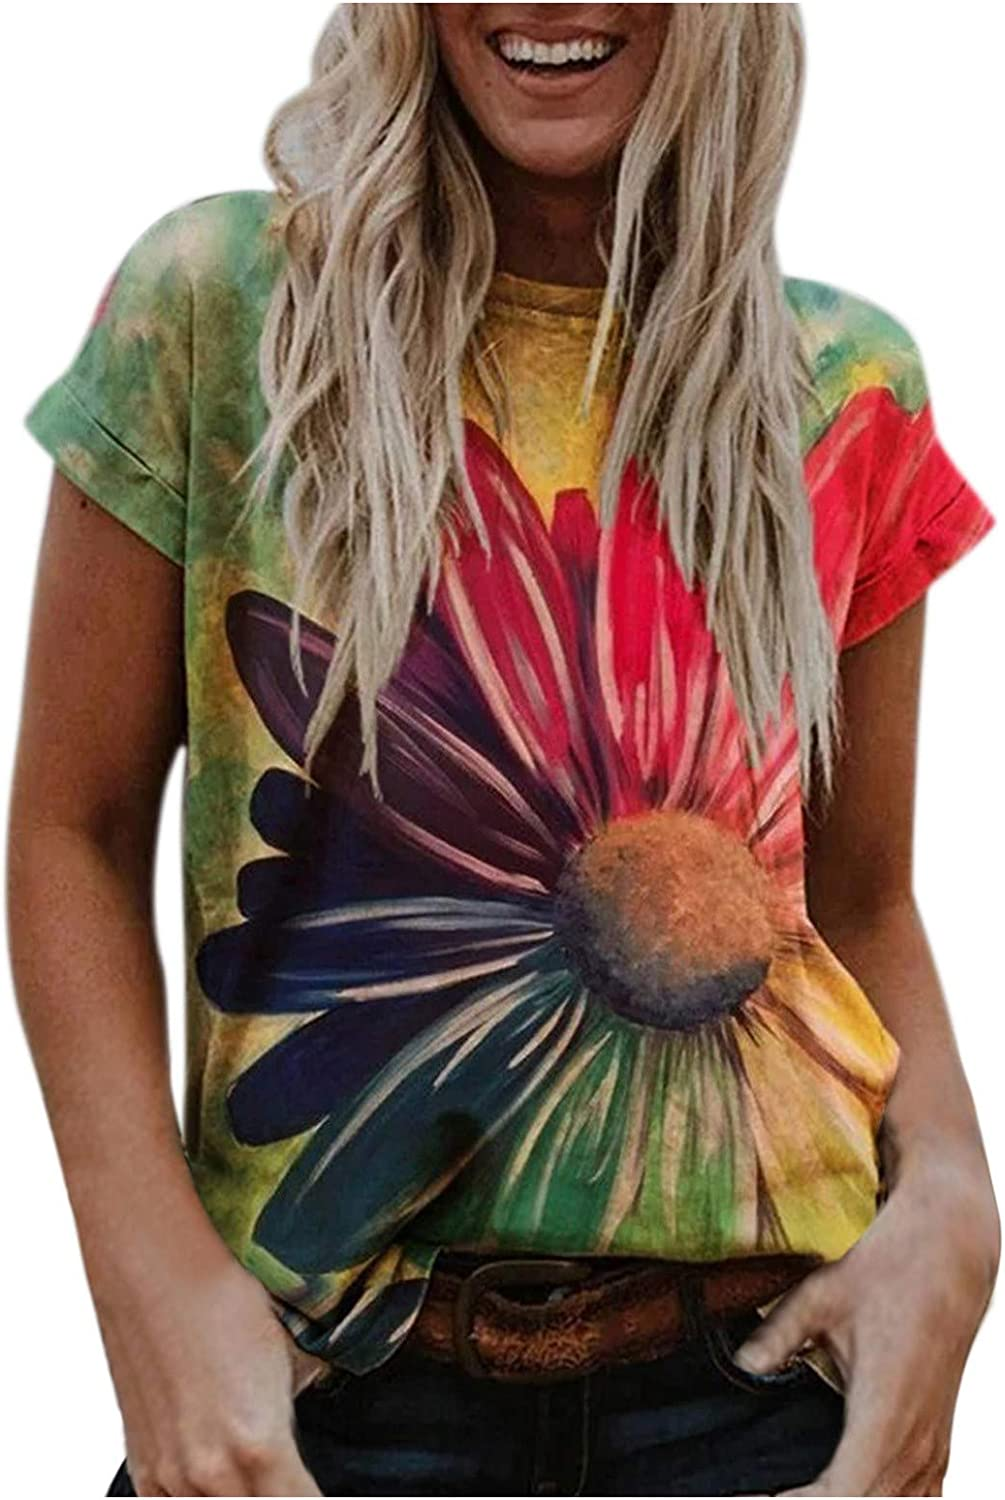 Aukbays T-Shirts for Women Flower Printed Short Sleeve Tops Summer Round Neck Loose Fit Tees Blouses Shirts